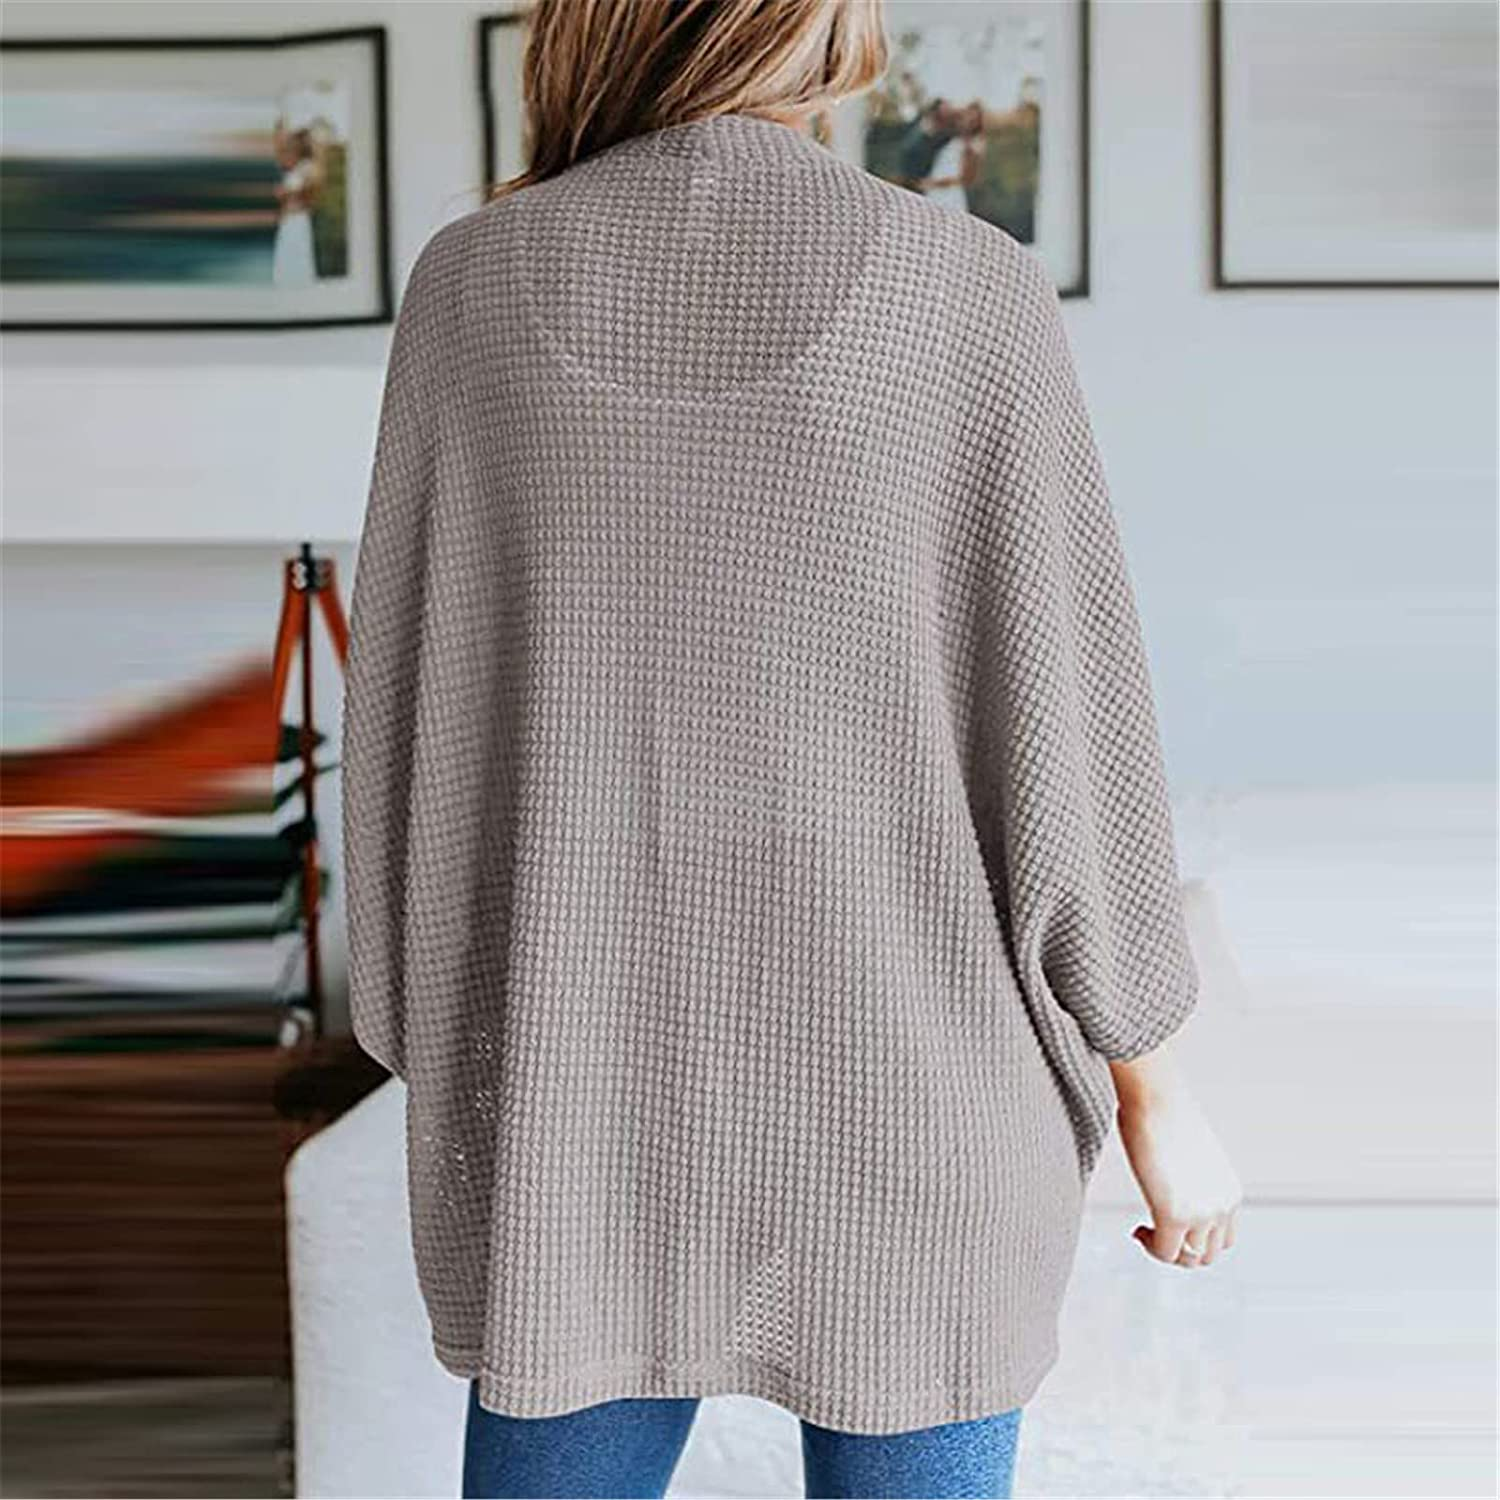 JABROCT Women's Bat Sleeve Solid Color Cardigans Sweaters,Stripe Knitted Sweater Outwear,Chunky Knitted Pullover Sweater